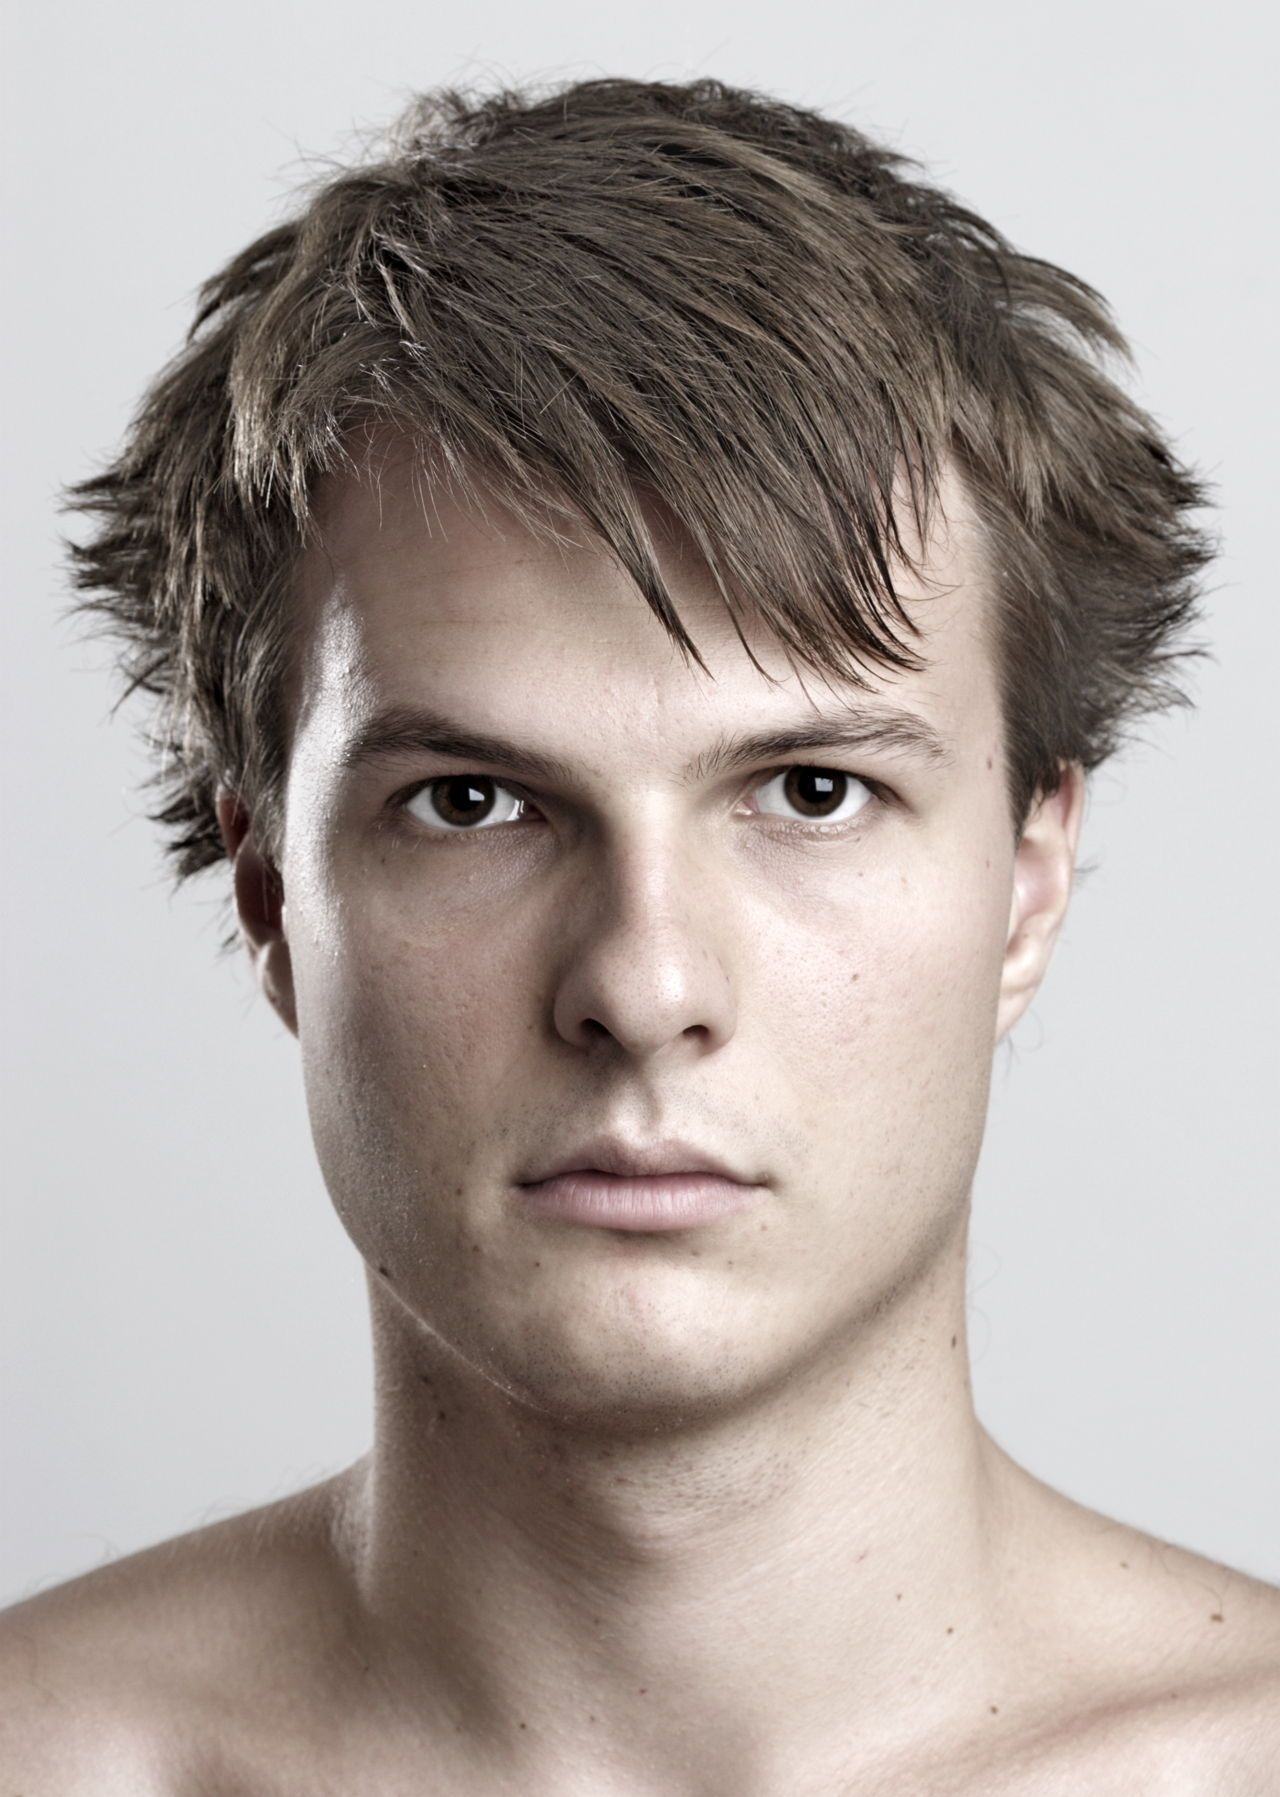 209 summer hairstyles for men mens summer hairstyles